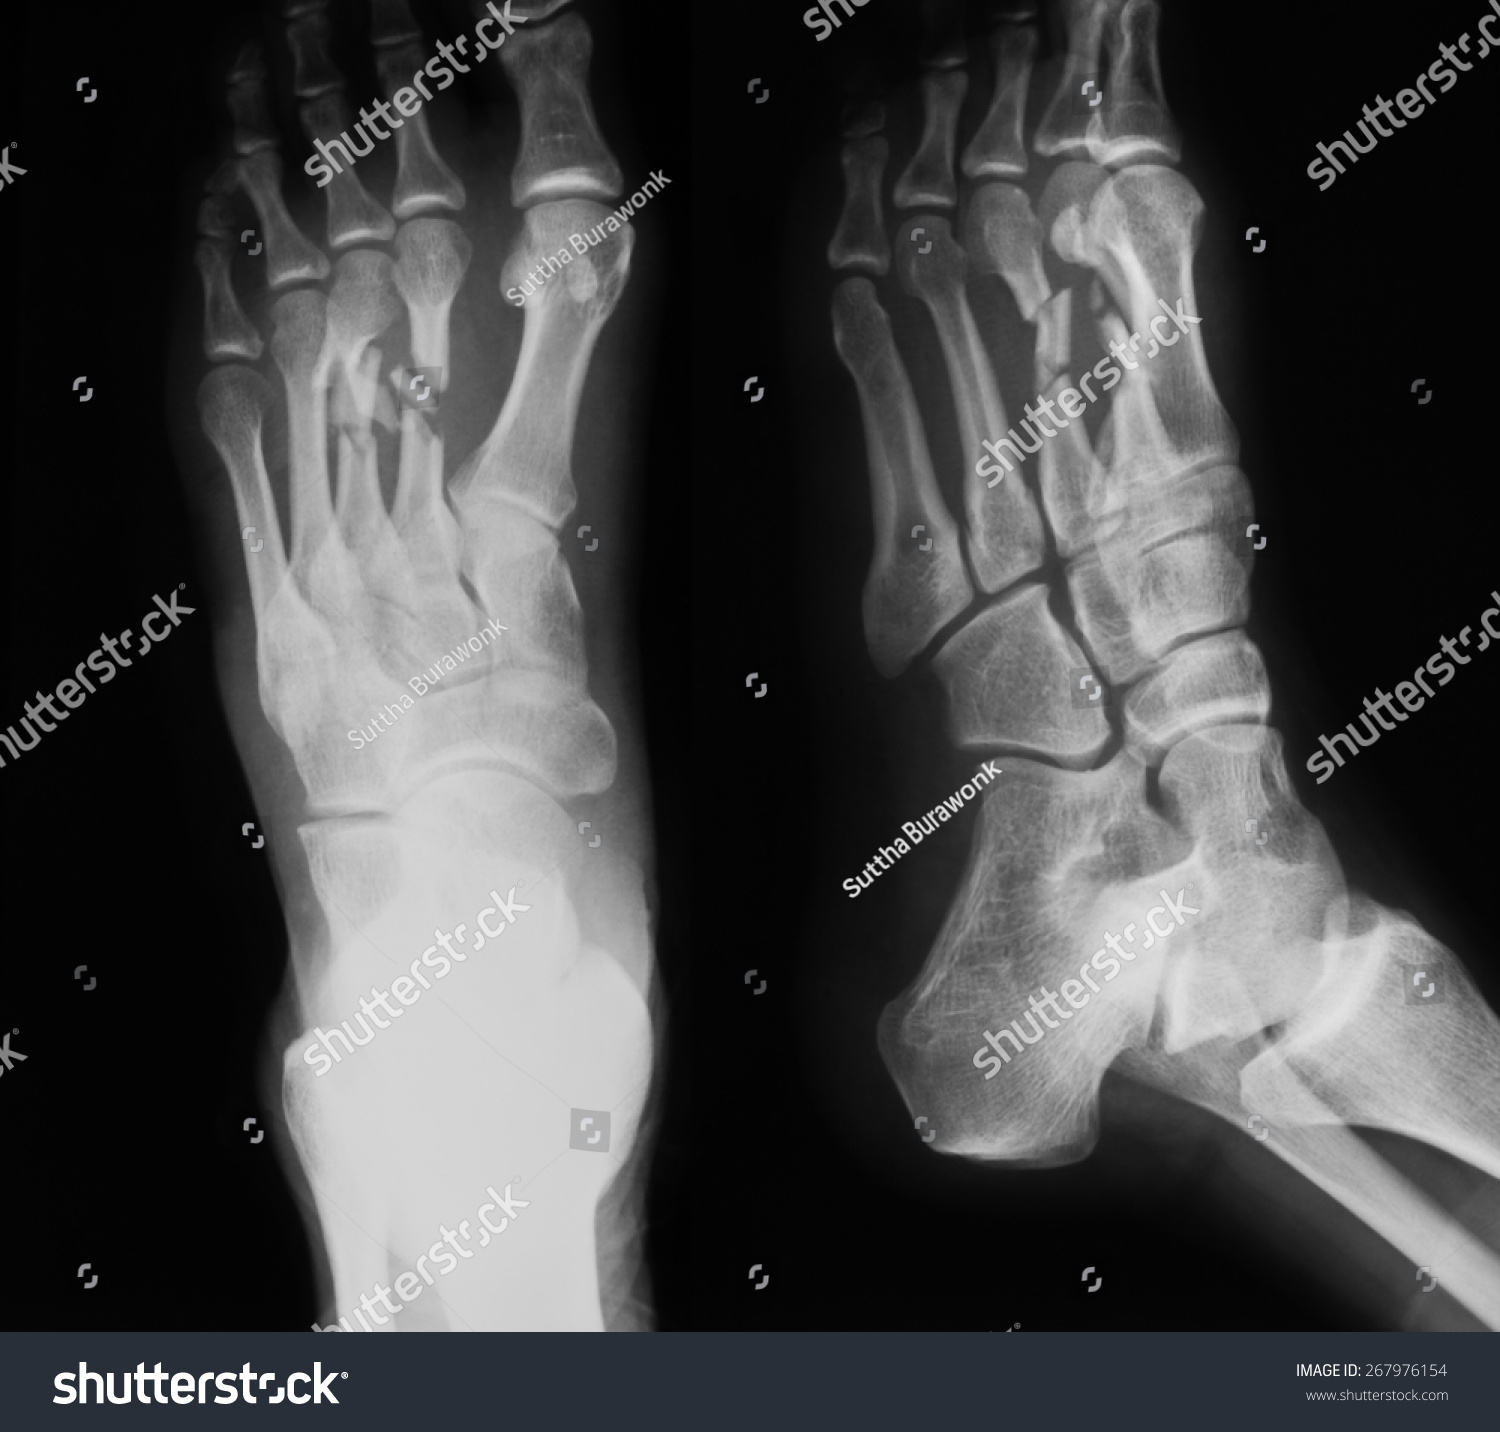 X-Ray Image Of Foot, Ap And Oblique View, Show Fracture Of The Second And Third Metatarsal Bones. Stock Photo 267976154 : Shutterstock